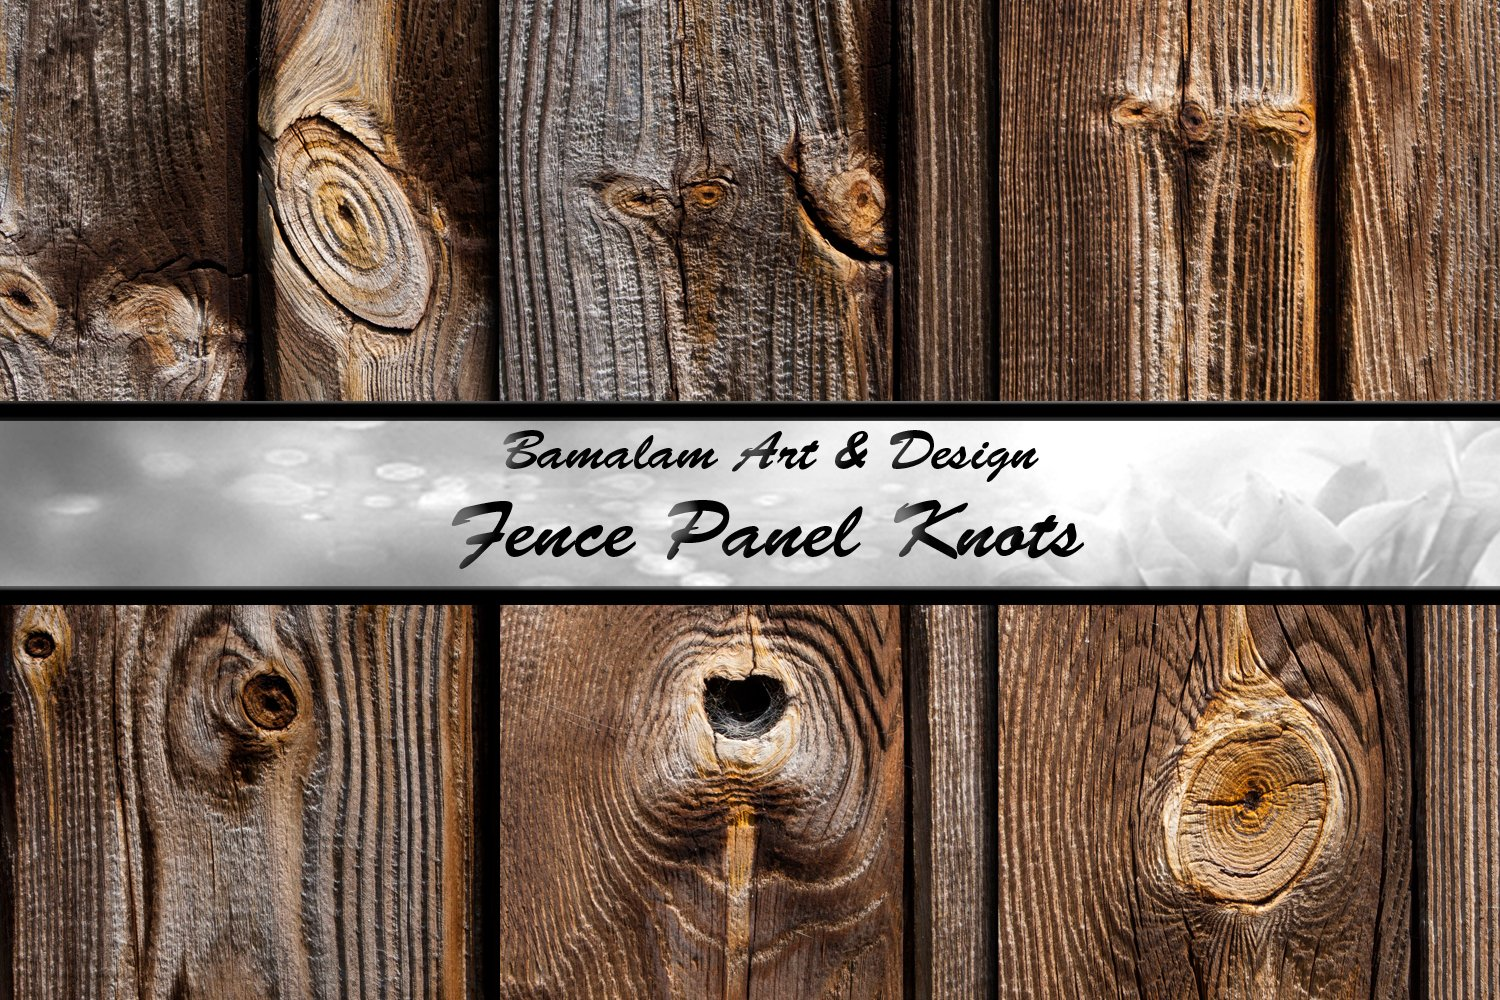 Wood Fence Panel Knots example image 1